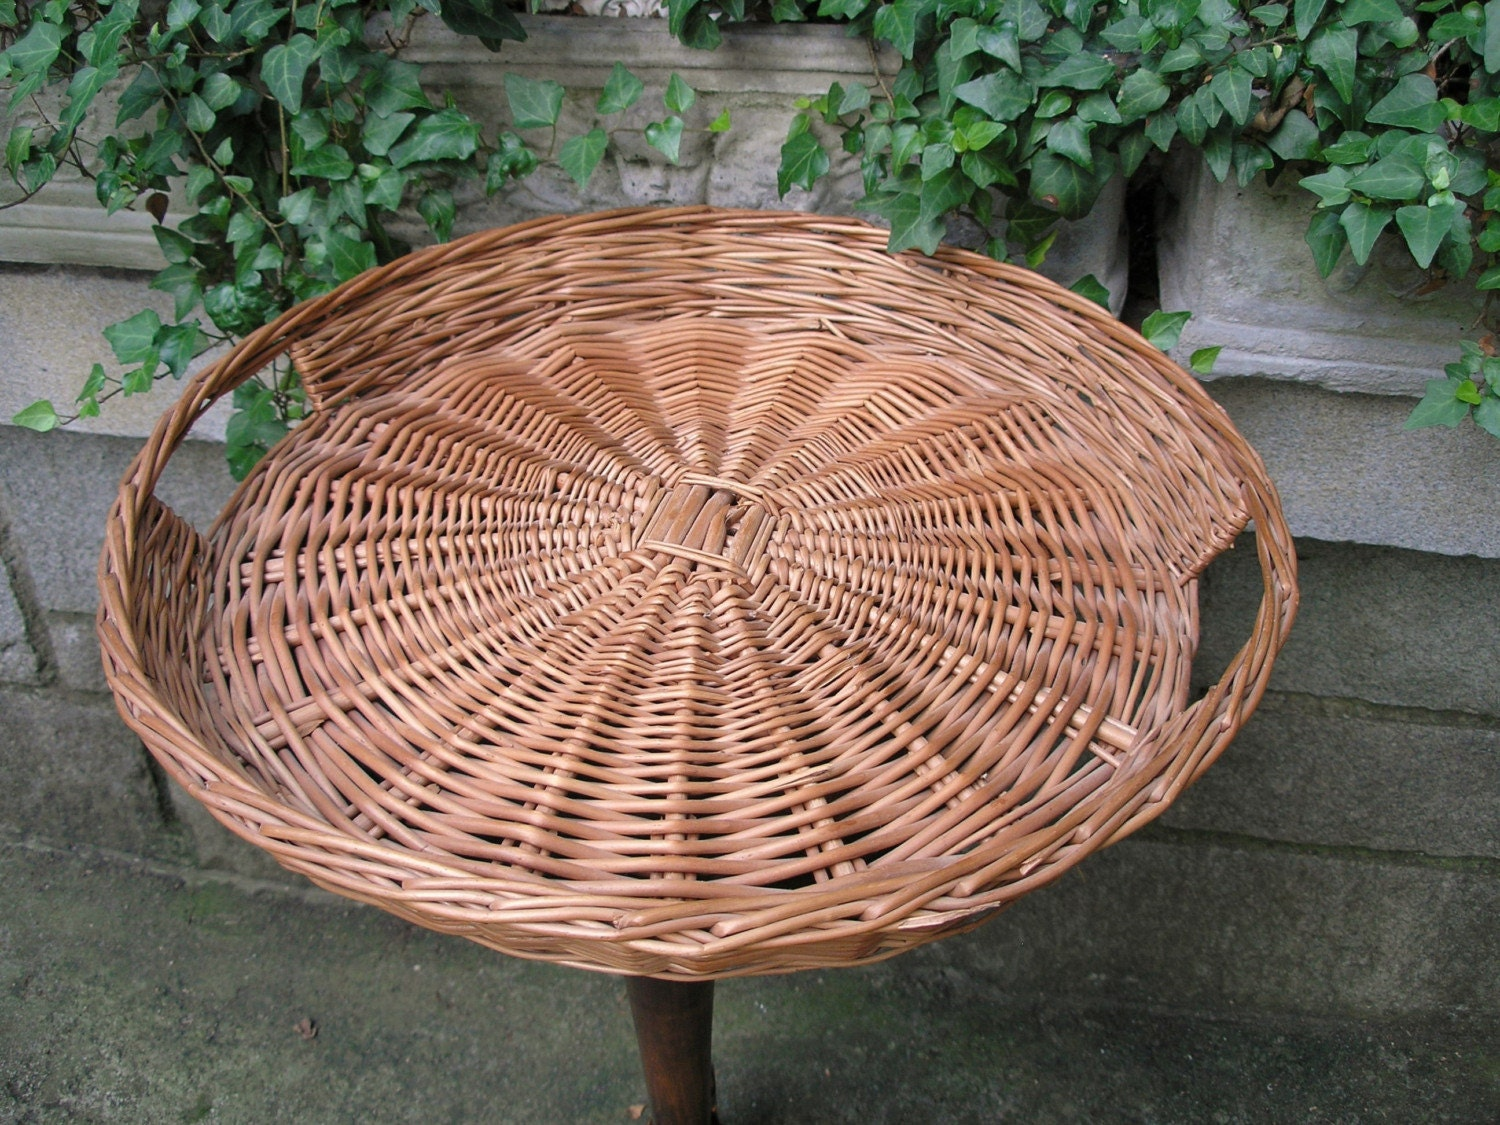 Large Wicker Tray By Placemichel On Etsy